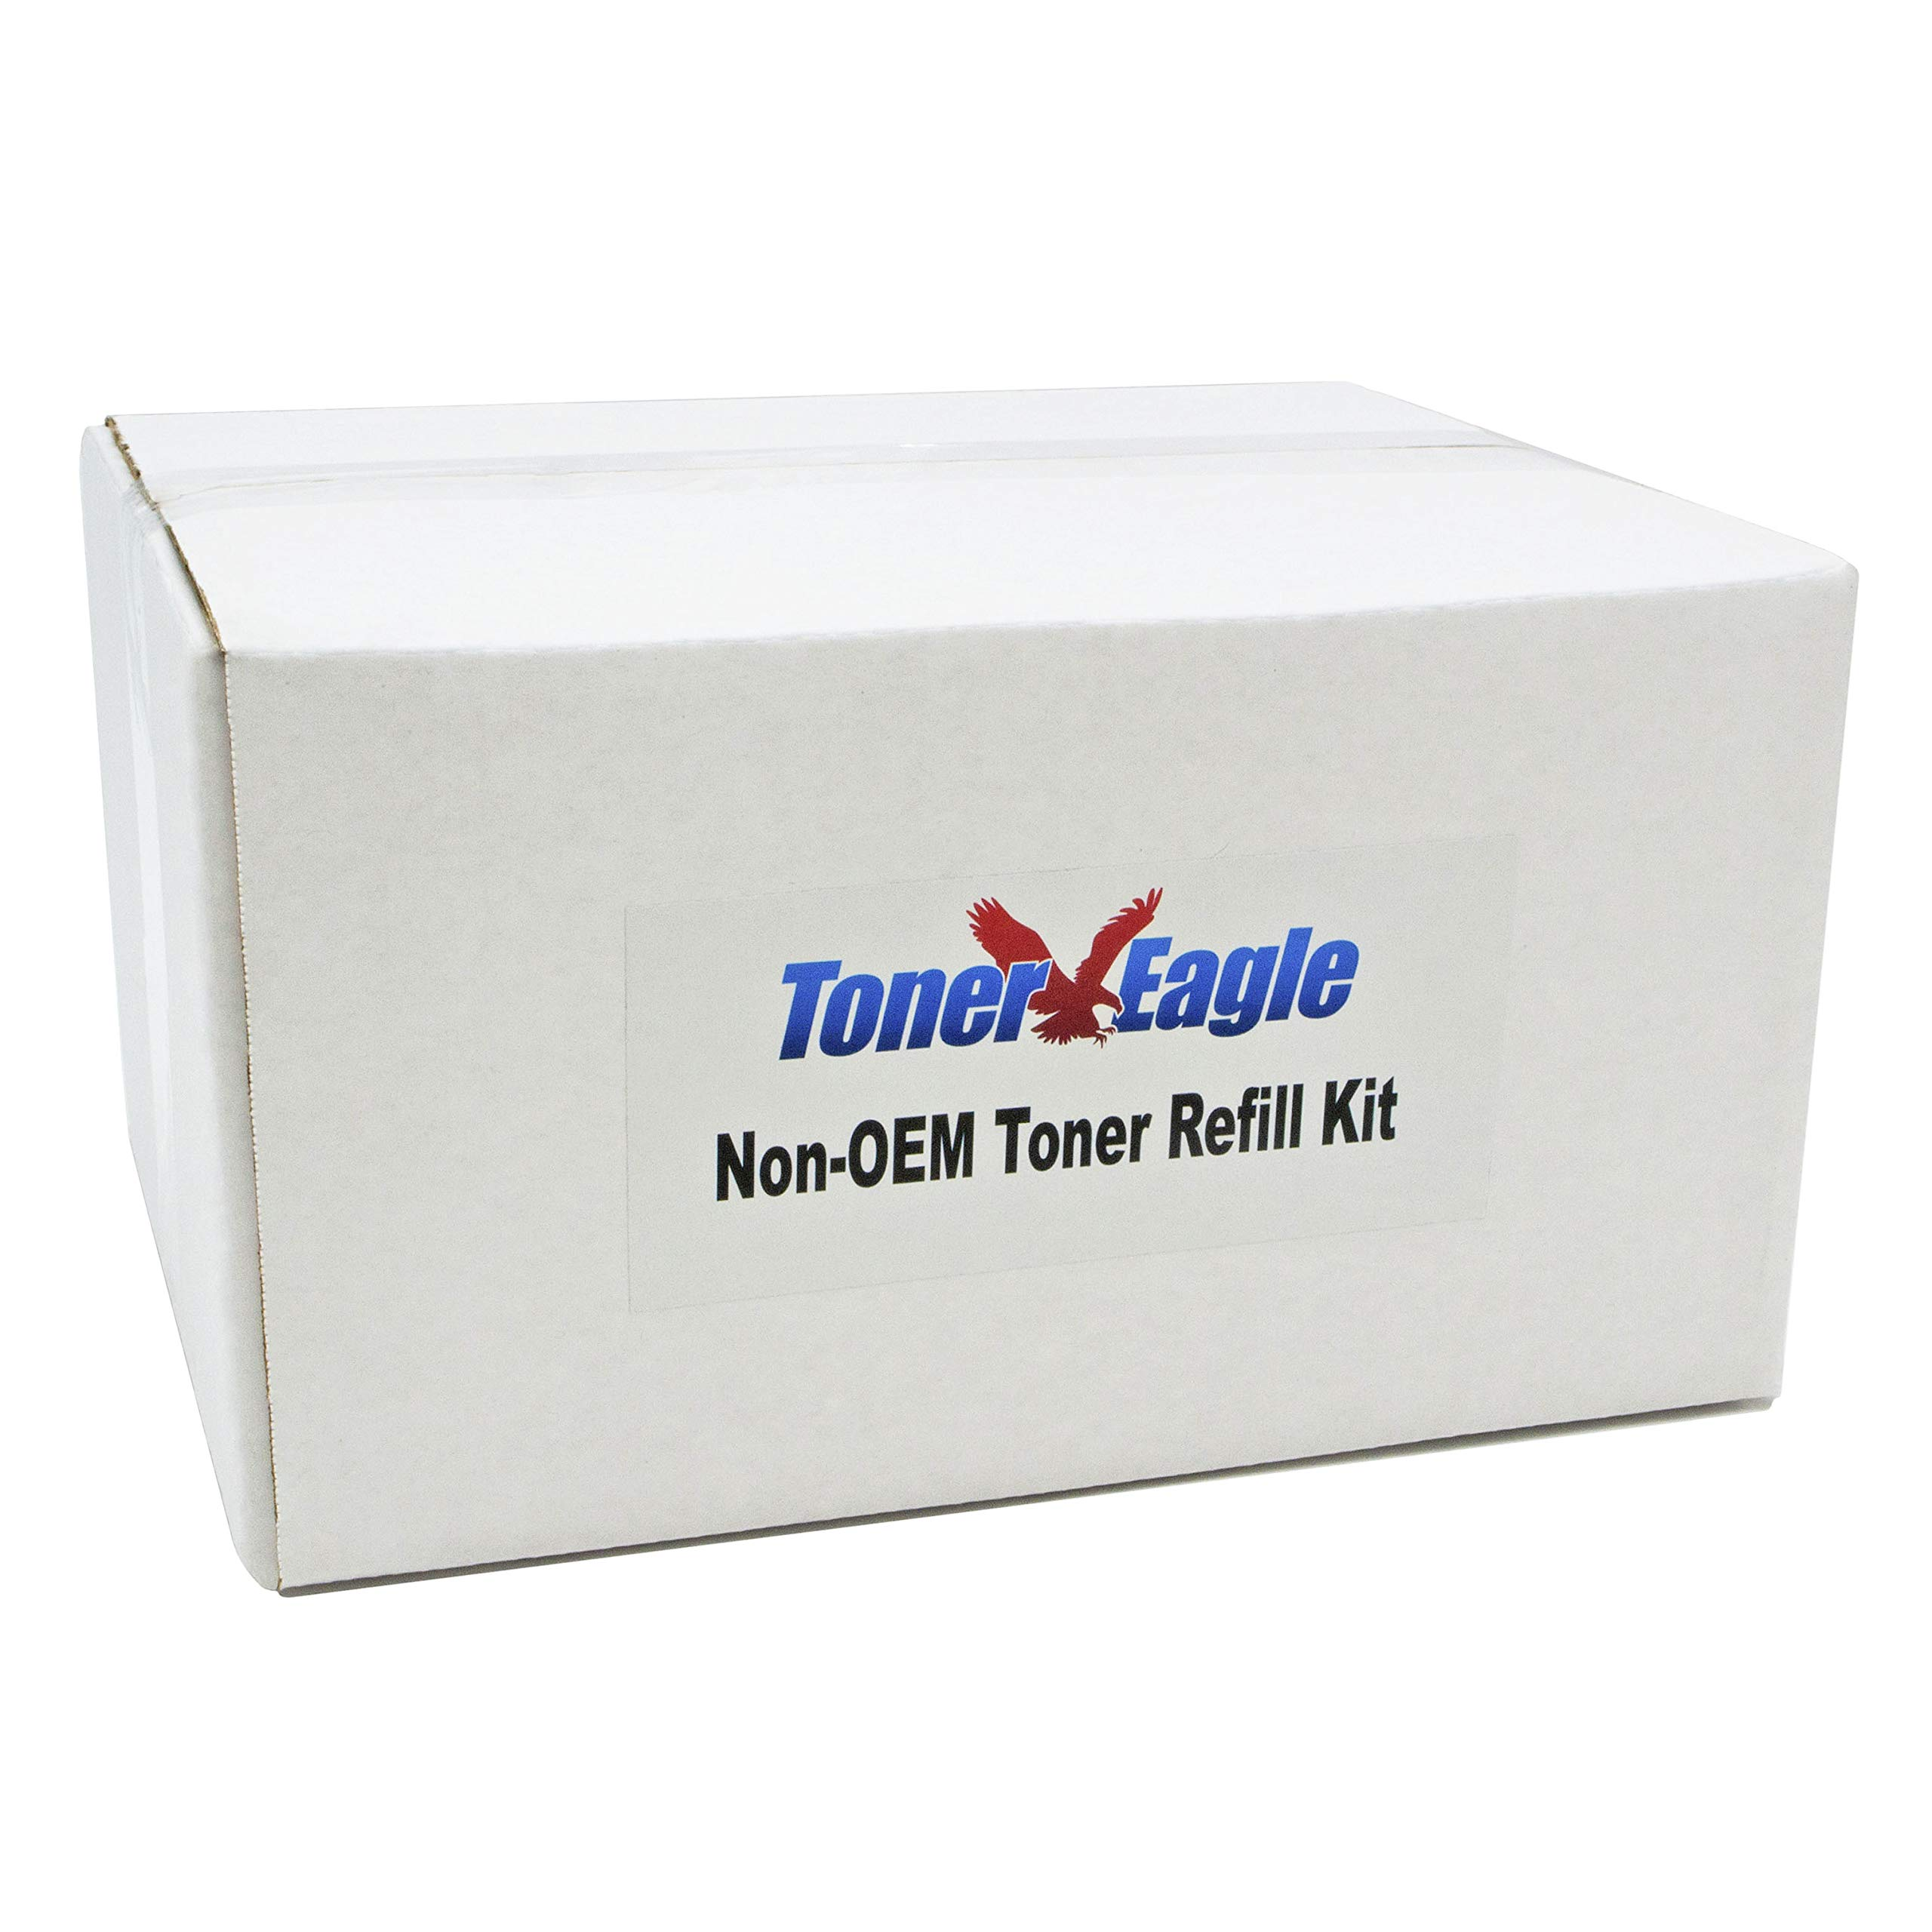 Toner Eagle Toner Refill Kits with Chips. [4-Color Set], Compatible with Xerox Phaser 6125 6125N